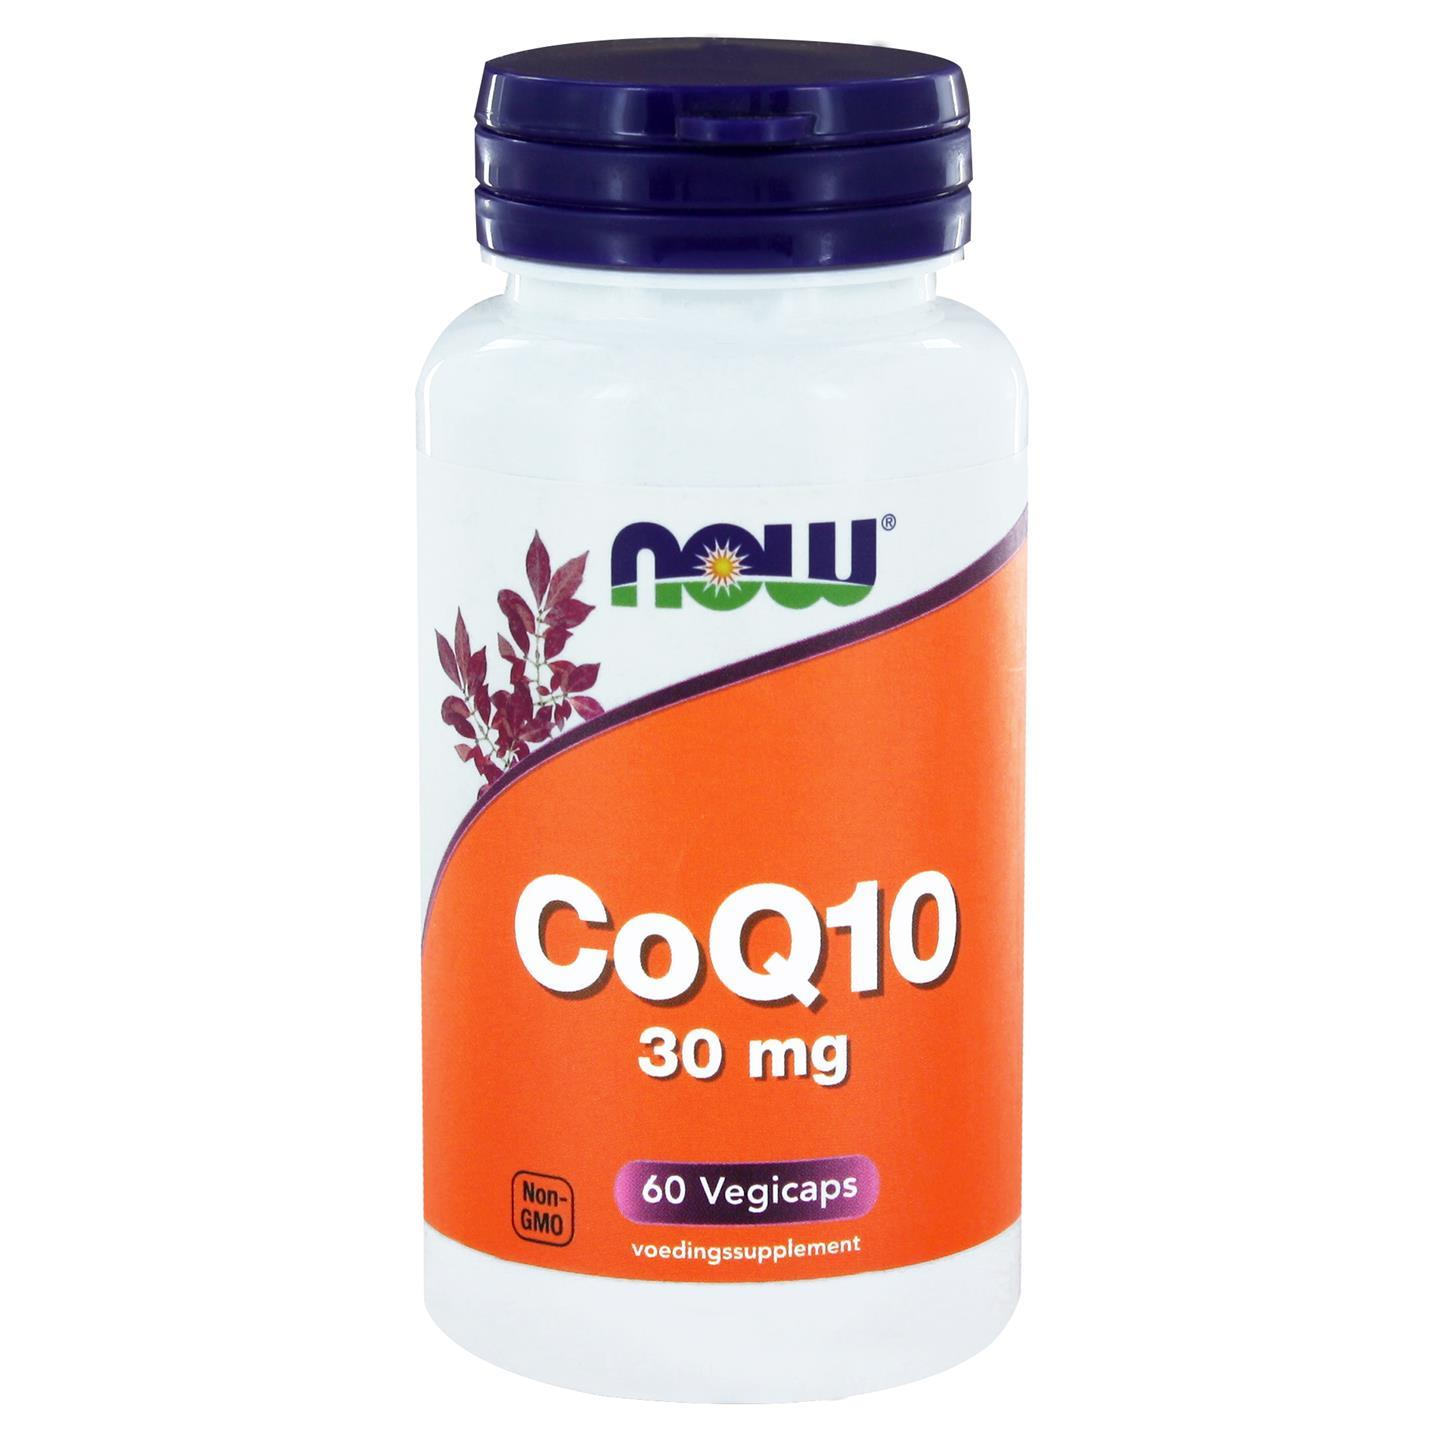 Image of Now Foods, CoQ10 30 mg, 60 Vcaps 0733739100757